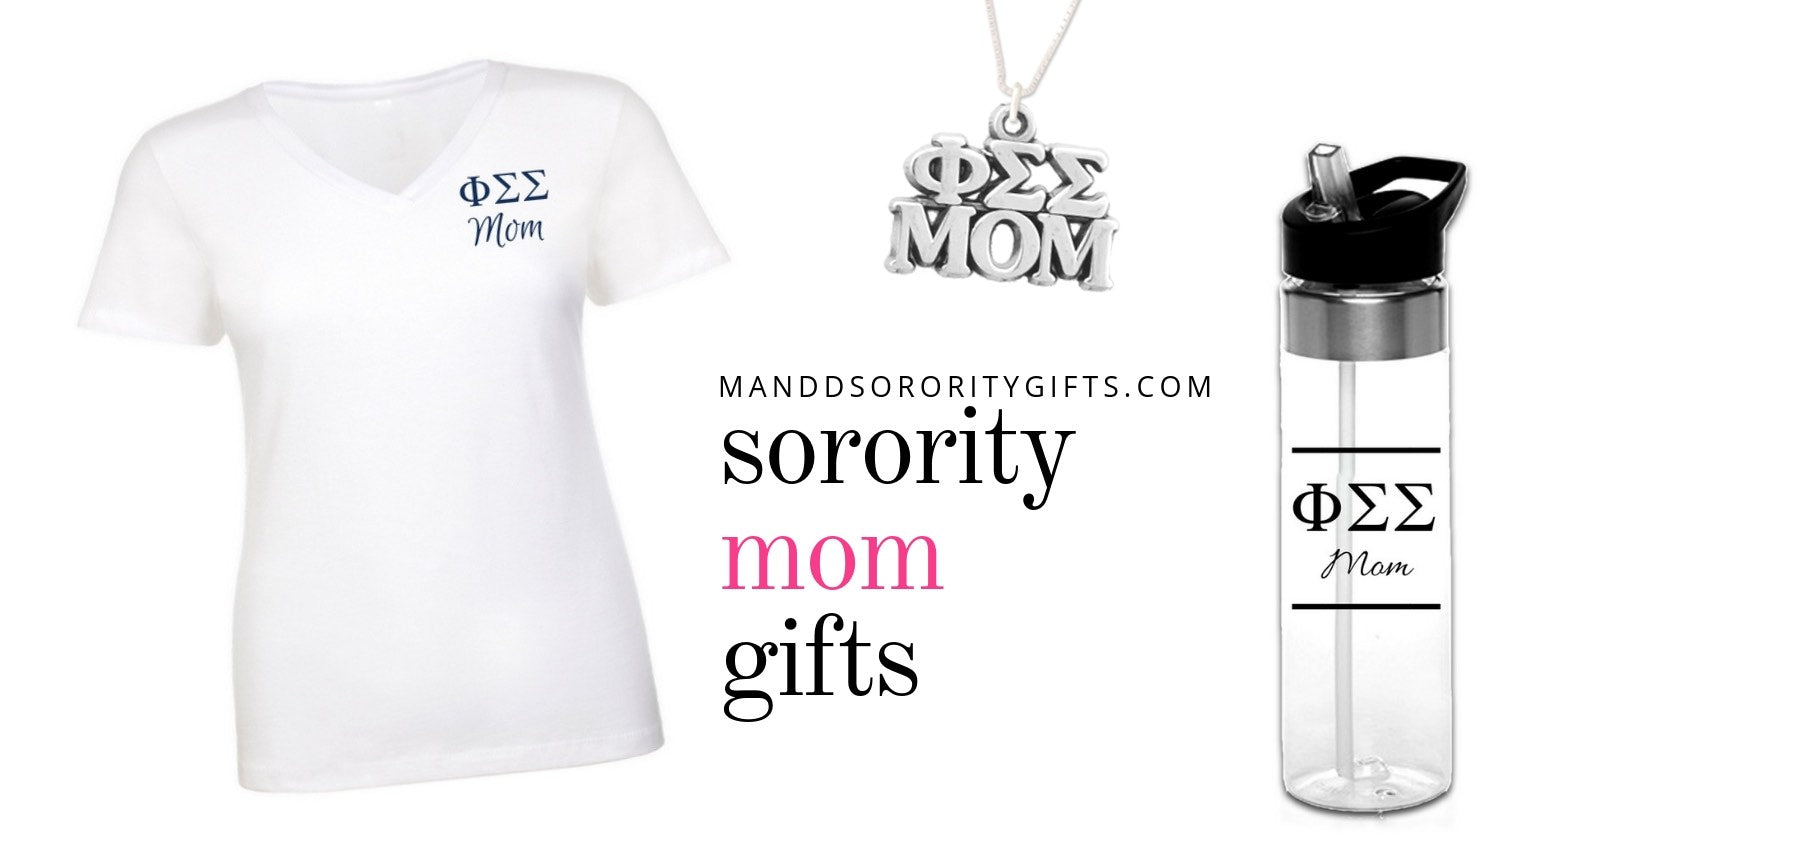 Phi Sigma Sigma Mom Gifts I 12 Reasons Moms Are the Best